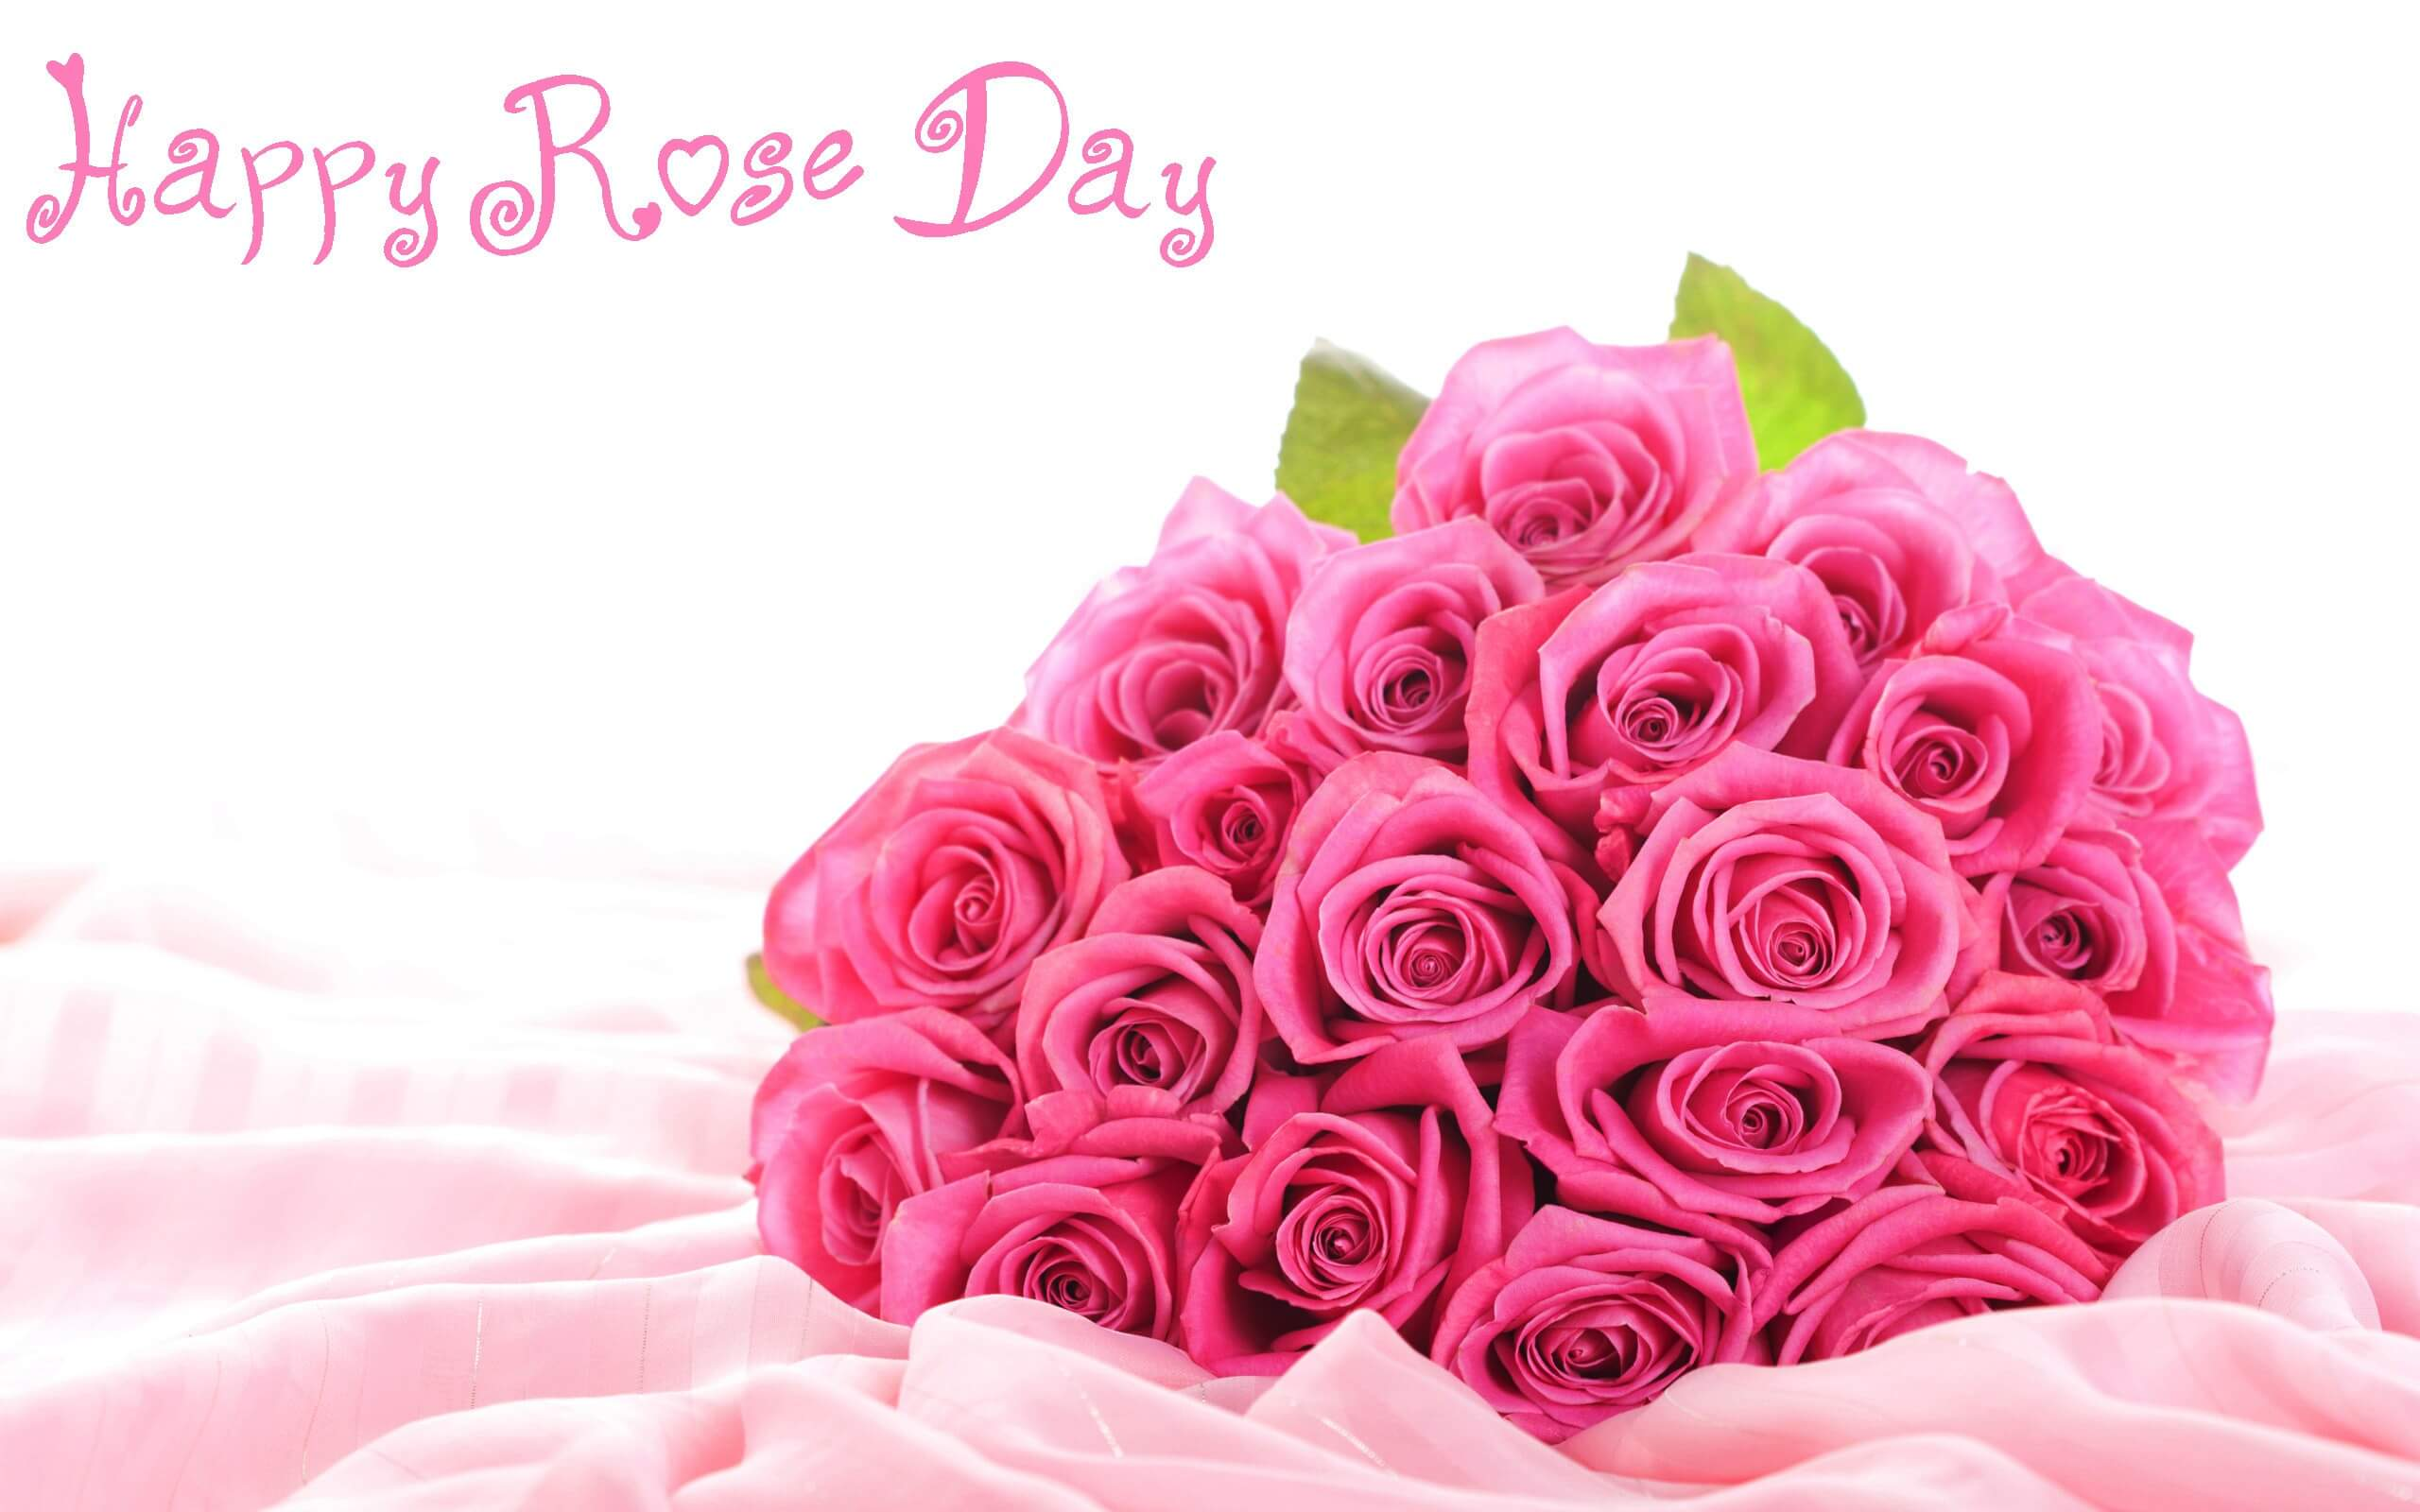 Rose day wallpapers free download happy rose day pink flower wishes greetings image picture hd wallpaper mightylinksfo